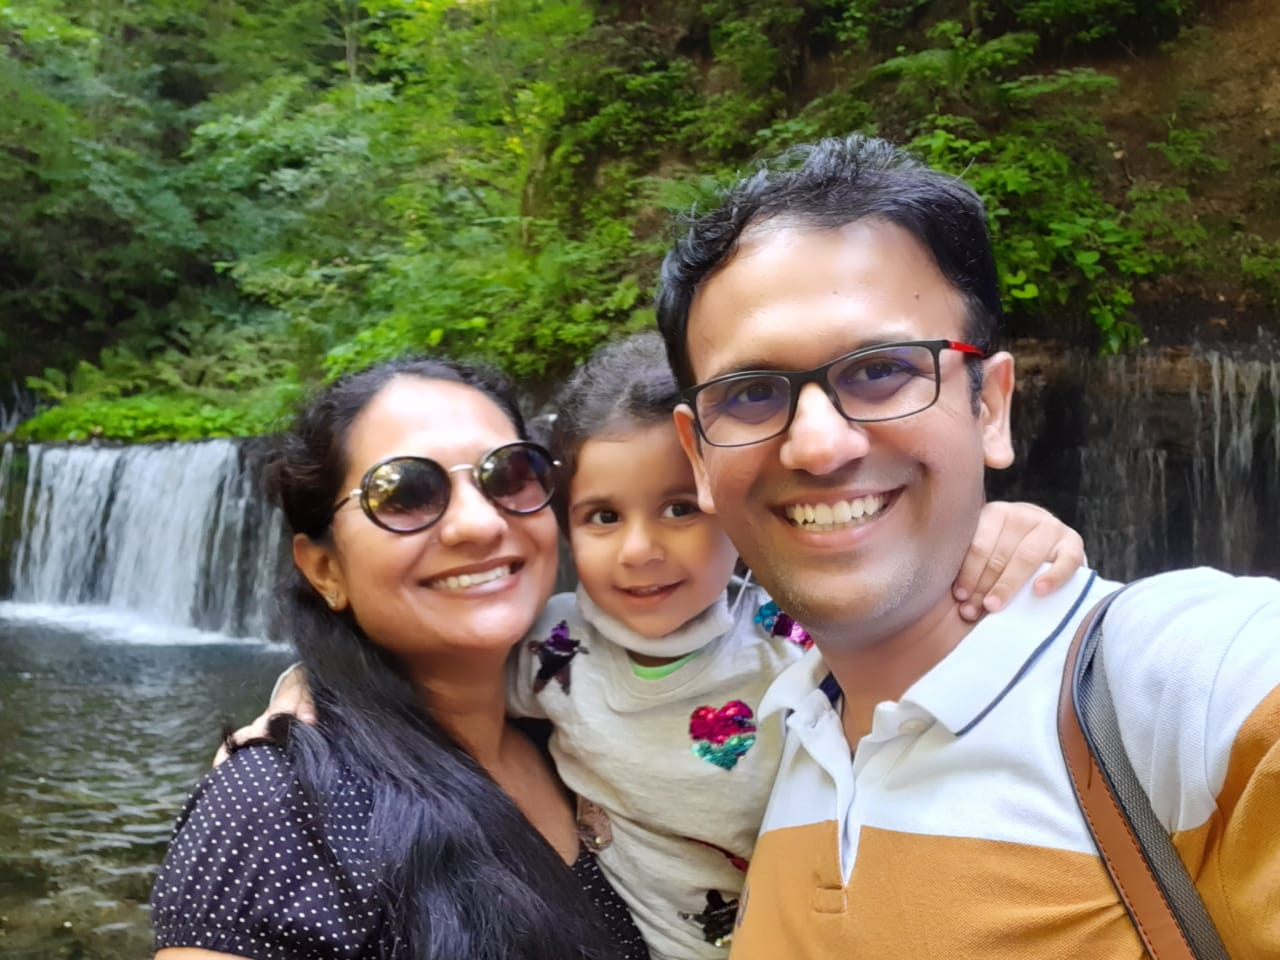 Hitotsubashi ICS Alumnus, Chinmay moved to Japan with family for his MBA